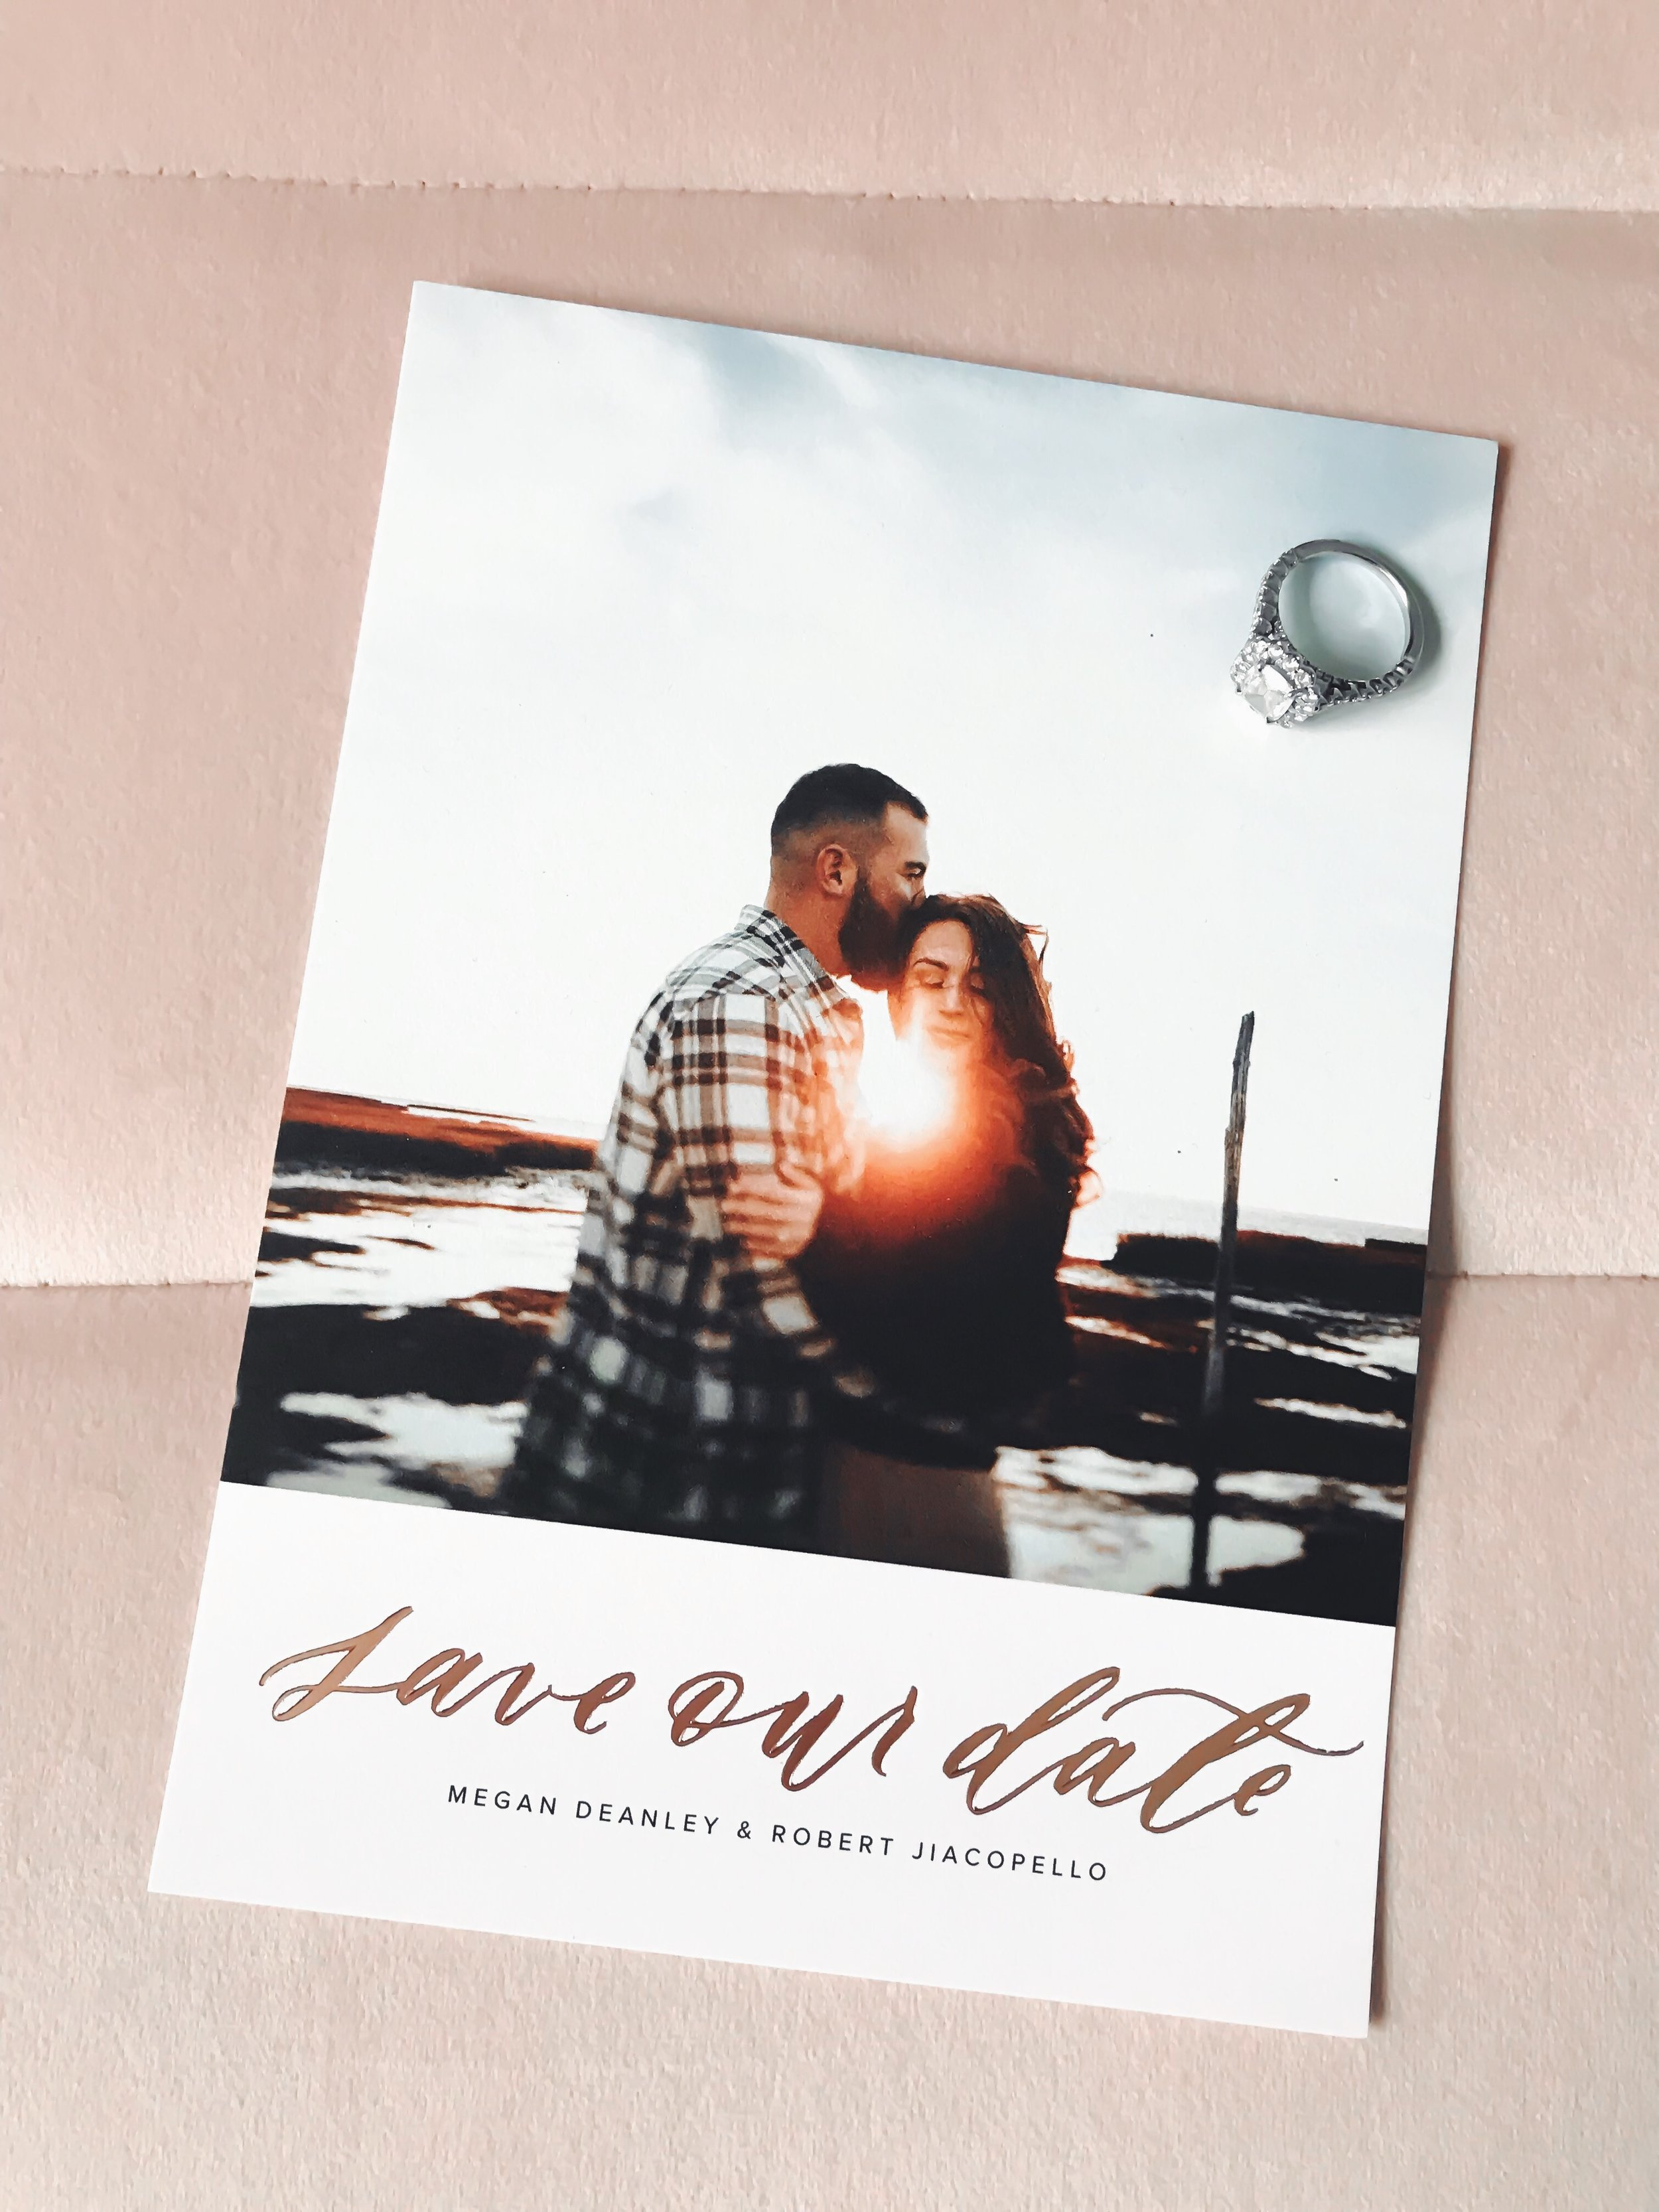 Save the Dates with Artifact Uprising | Pine Barren Beauty | where to get save the dates, save the dates with rose gold foil, rose gold foil save the dates, simple save the dates, chic save the dates